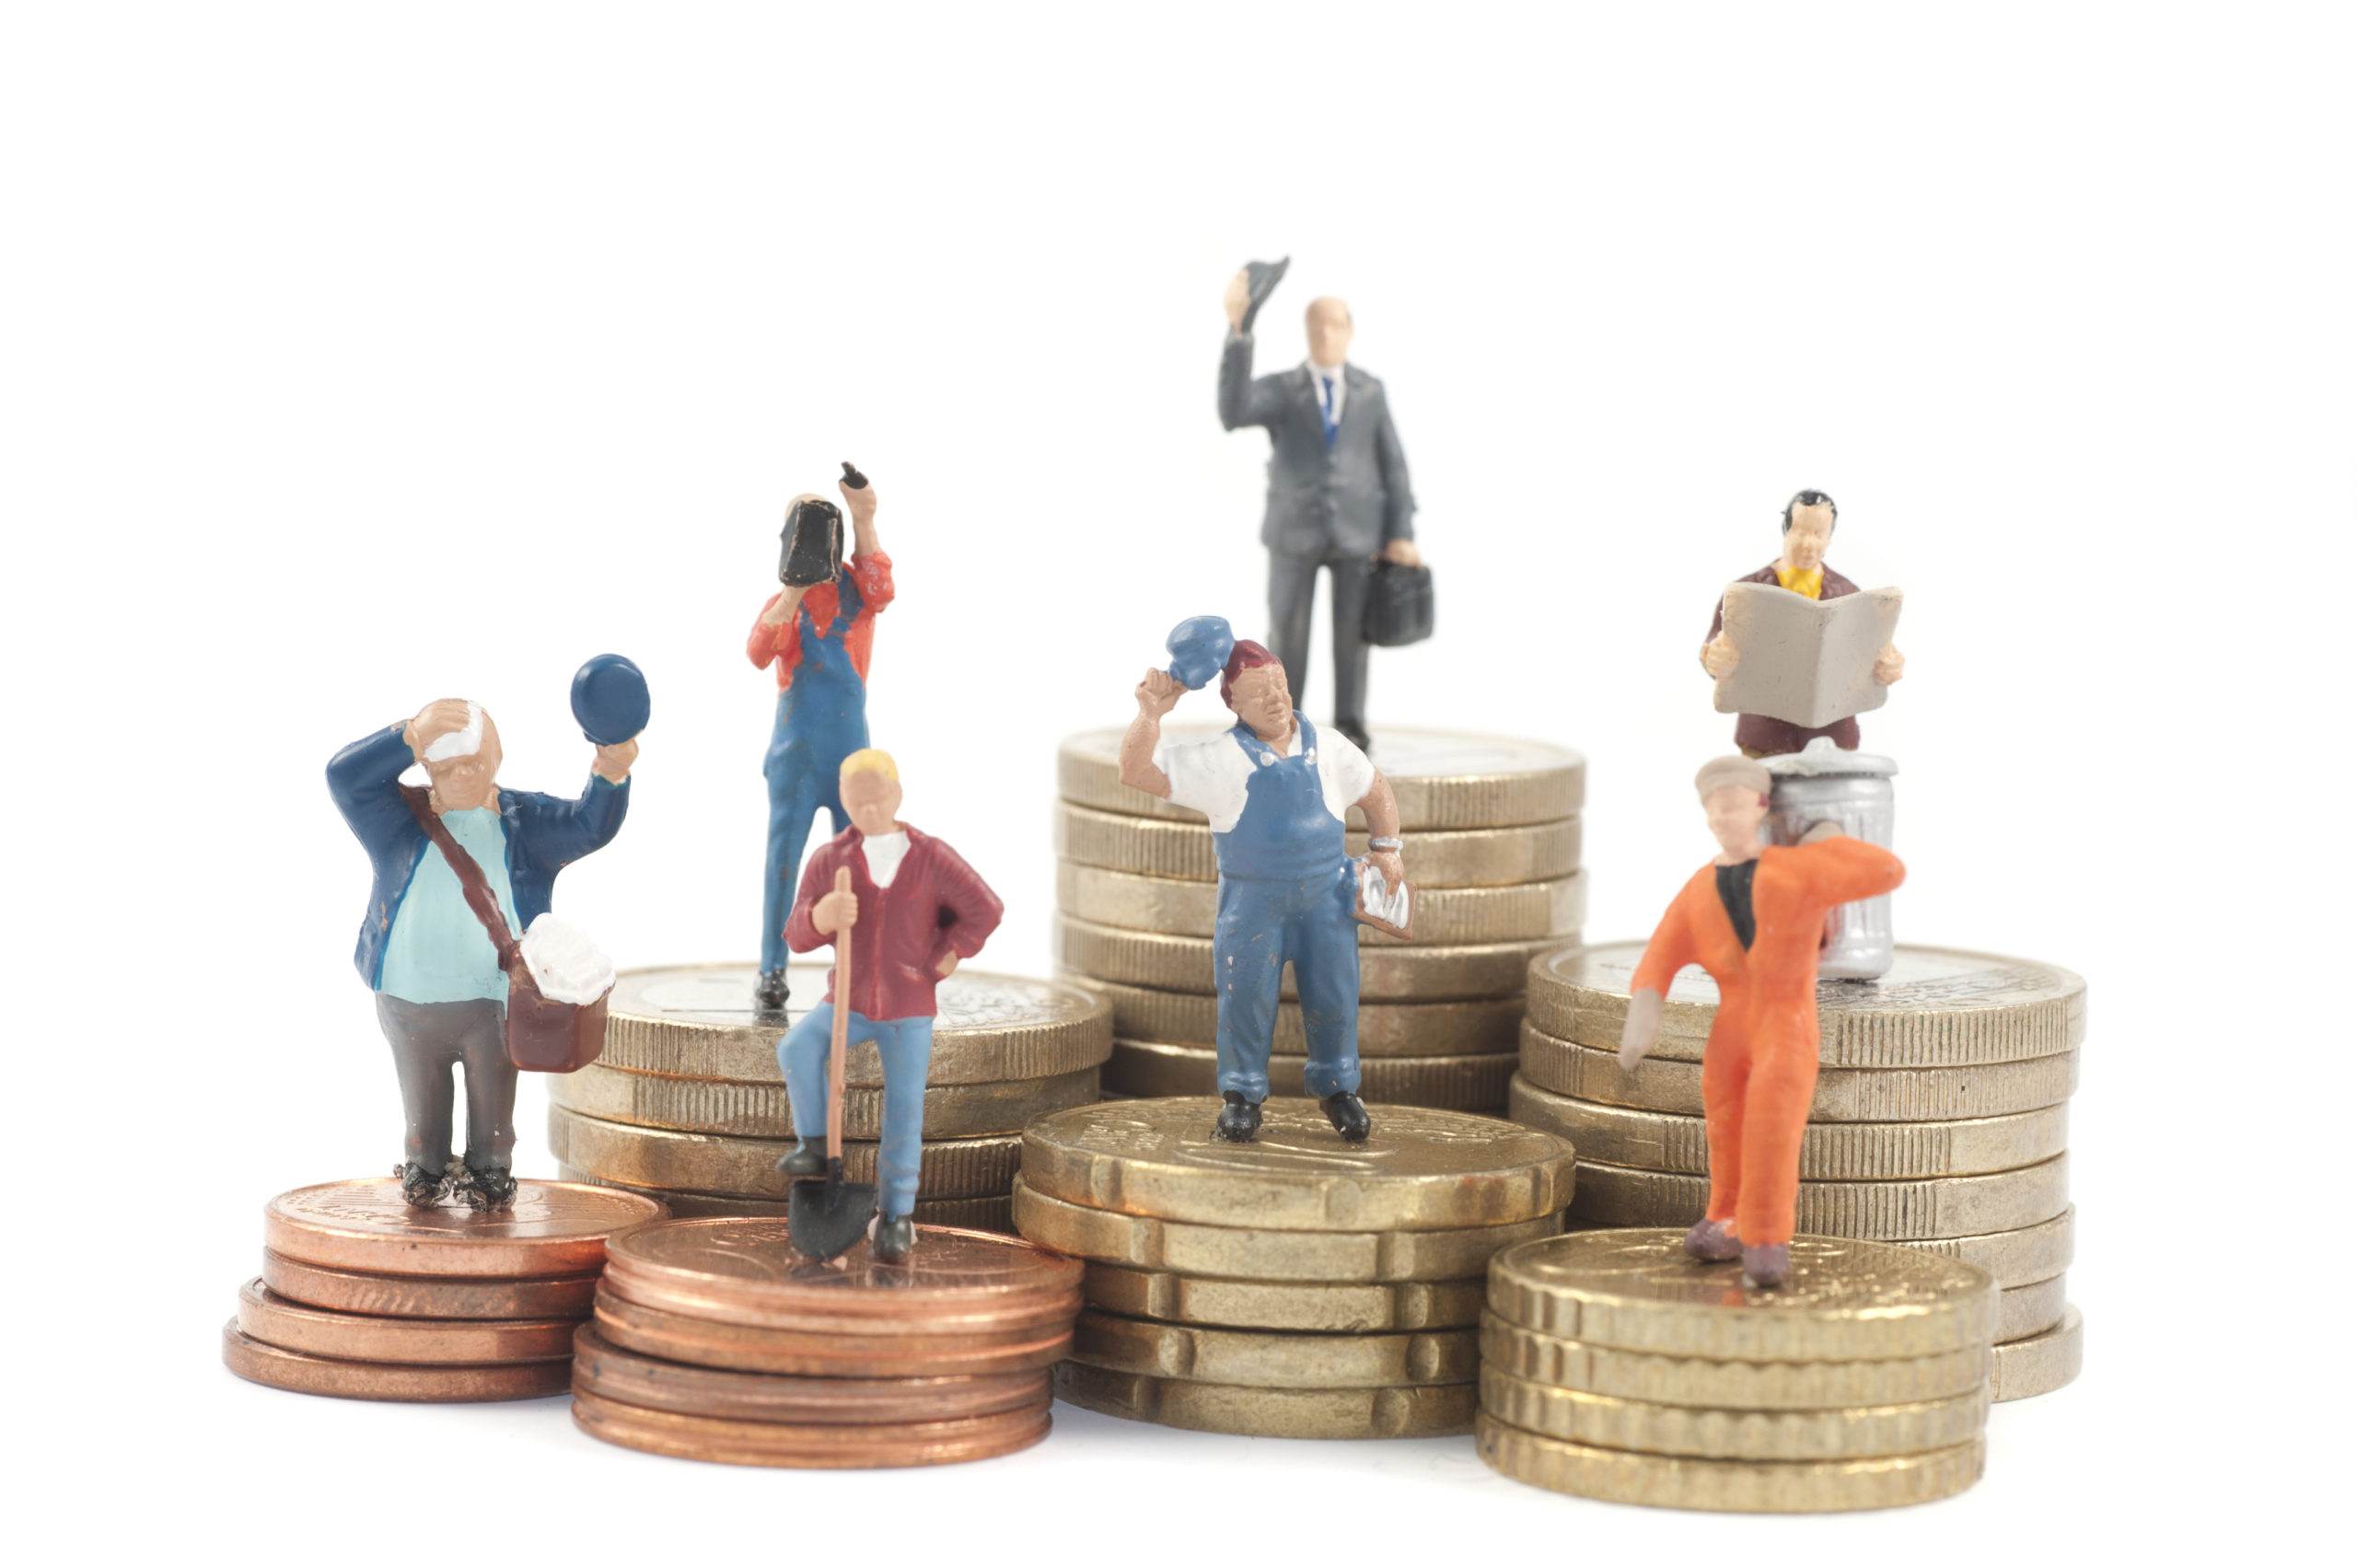 HMRC Clarification Means Up To An Extra £4000 For Many Employers.